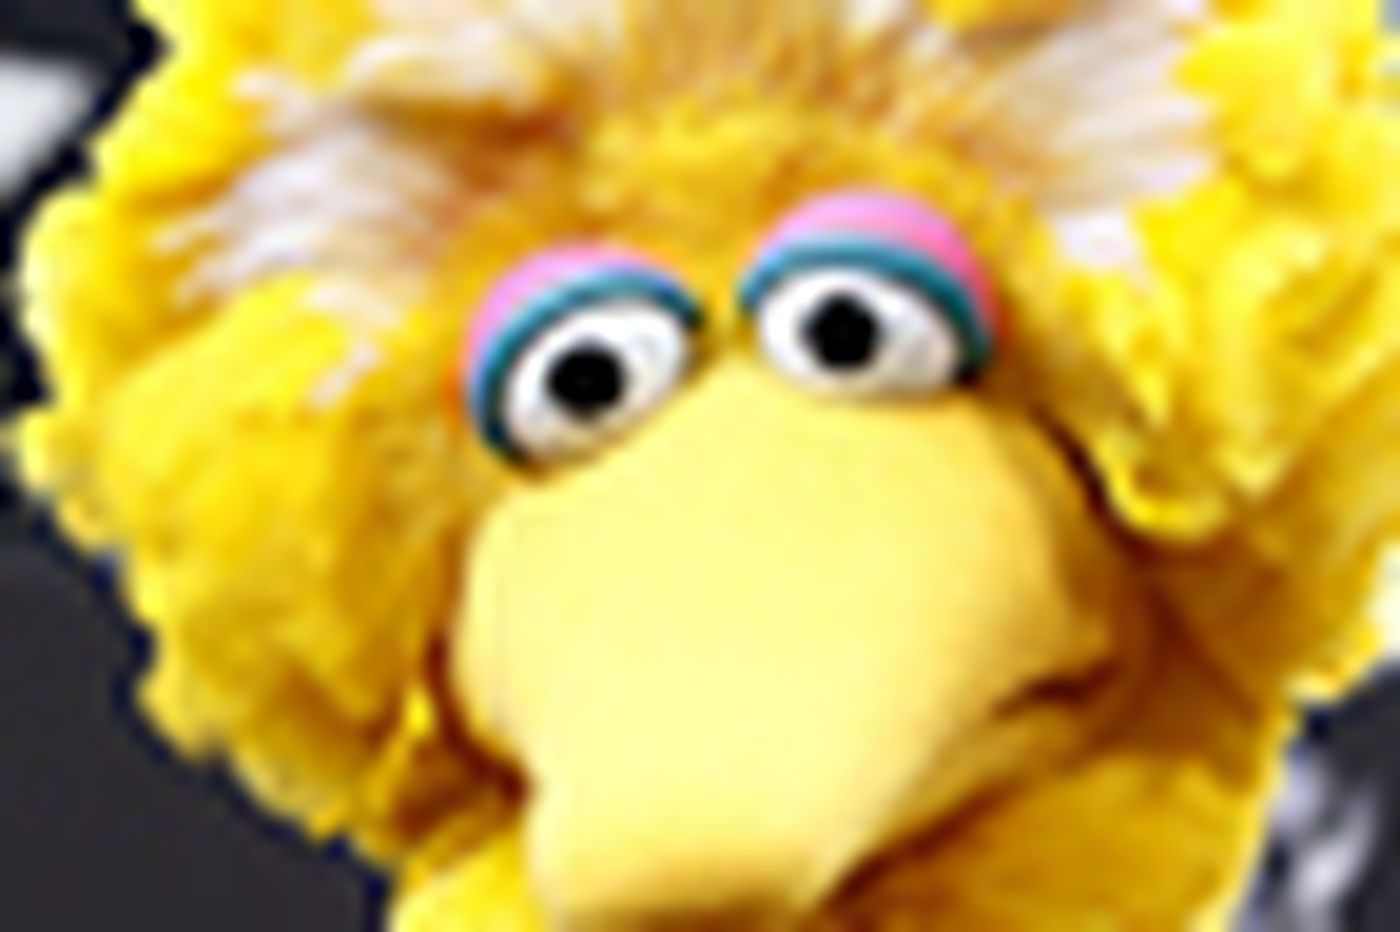 Big Bird, where you'd least expect him